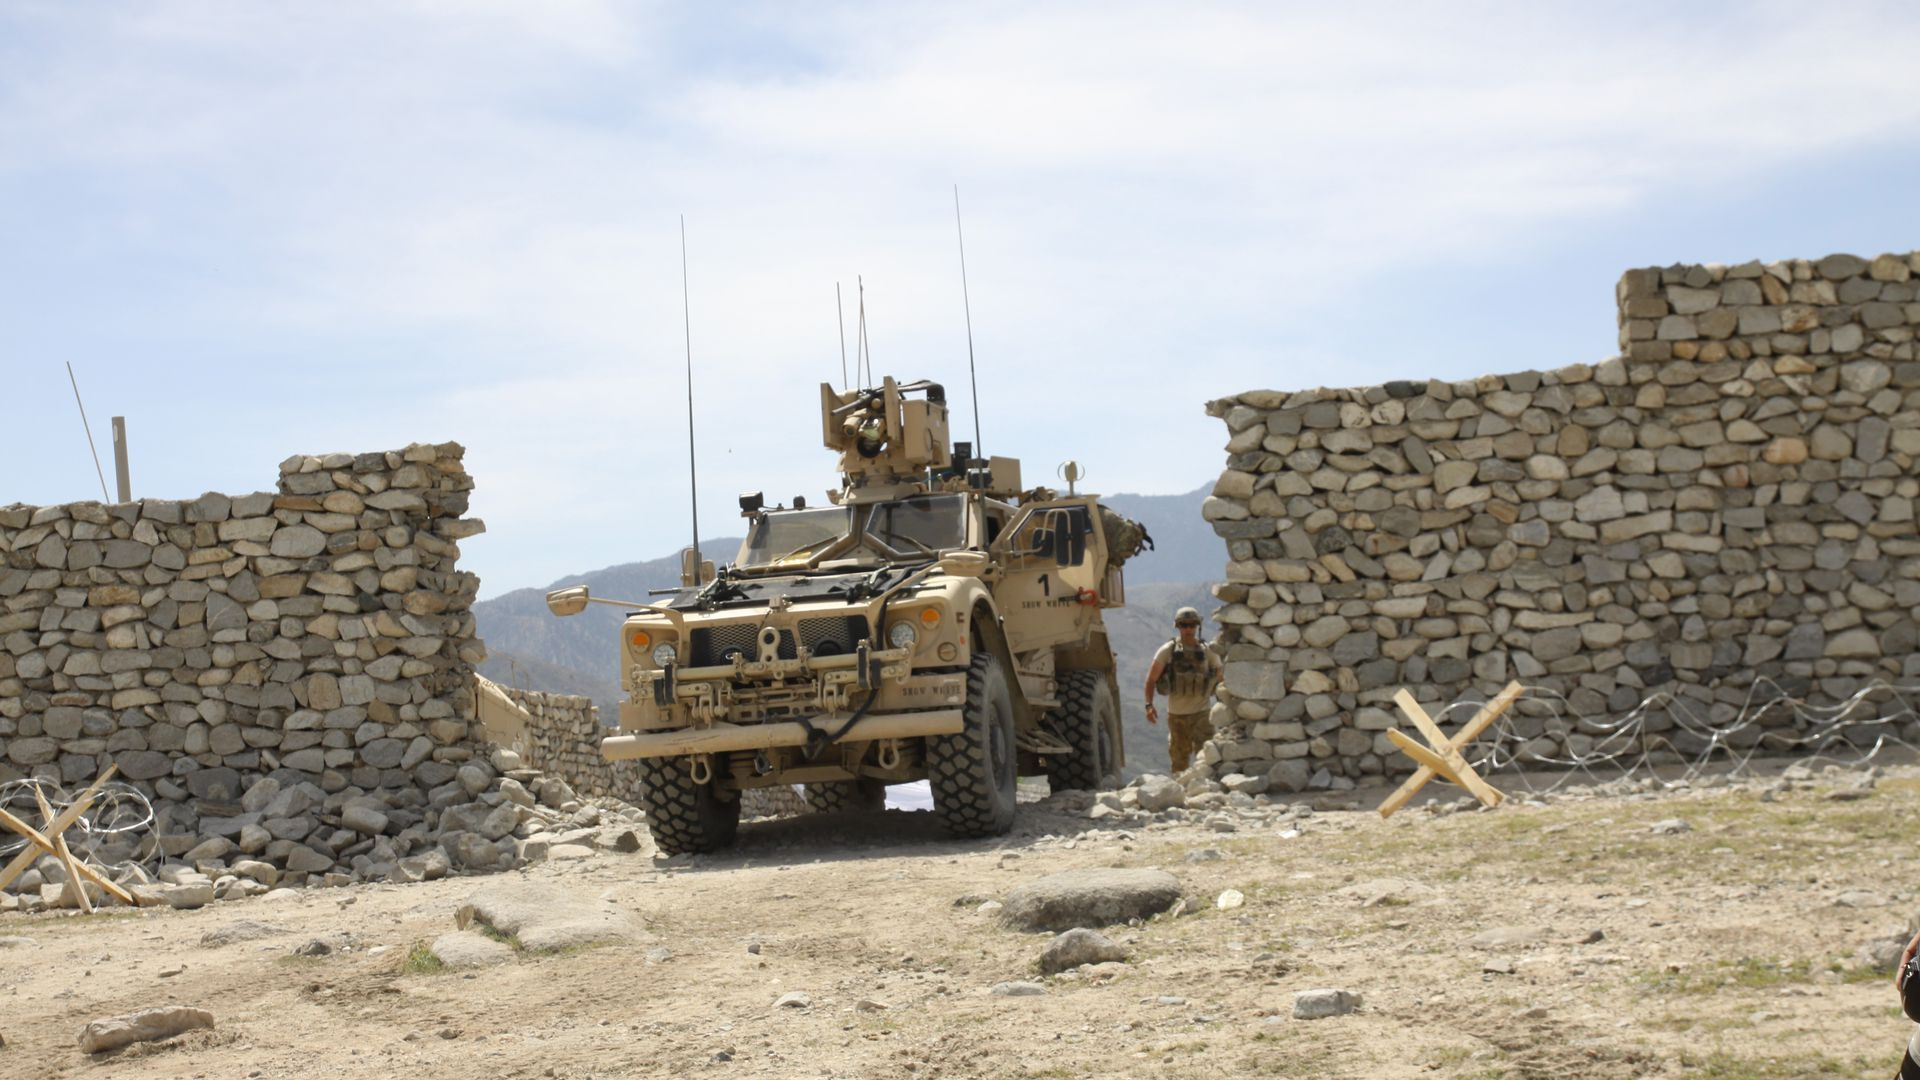 armored vehicle in Afghanistan